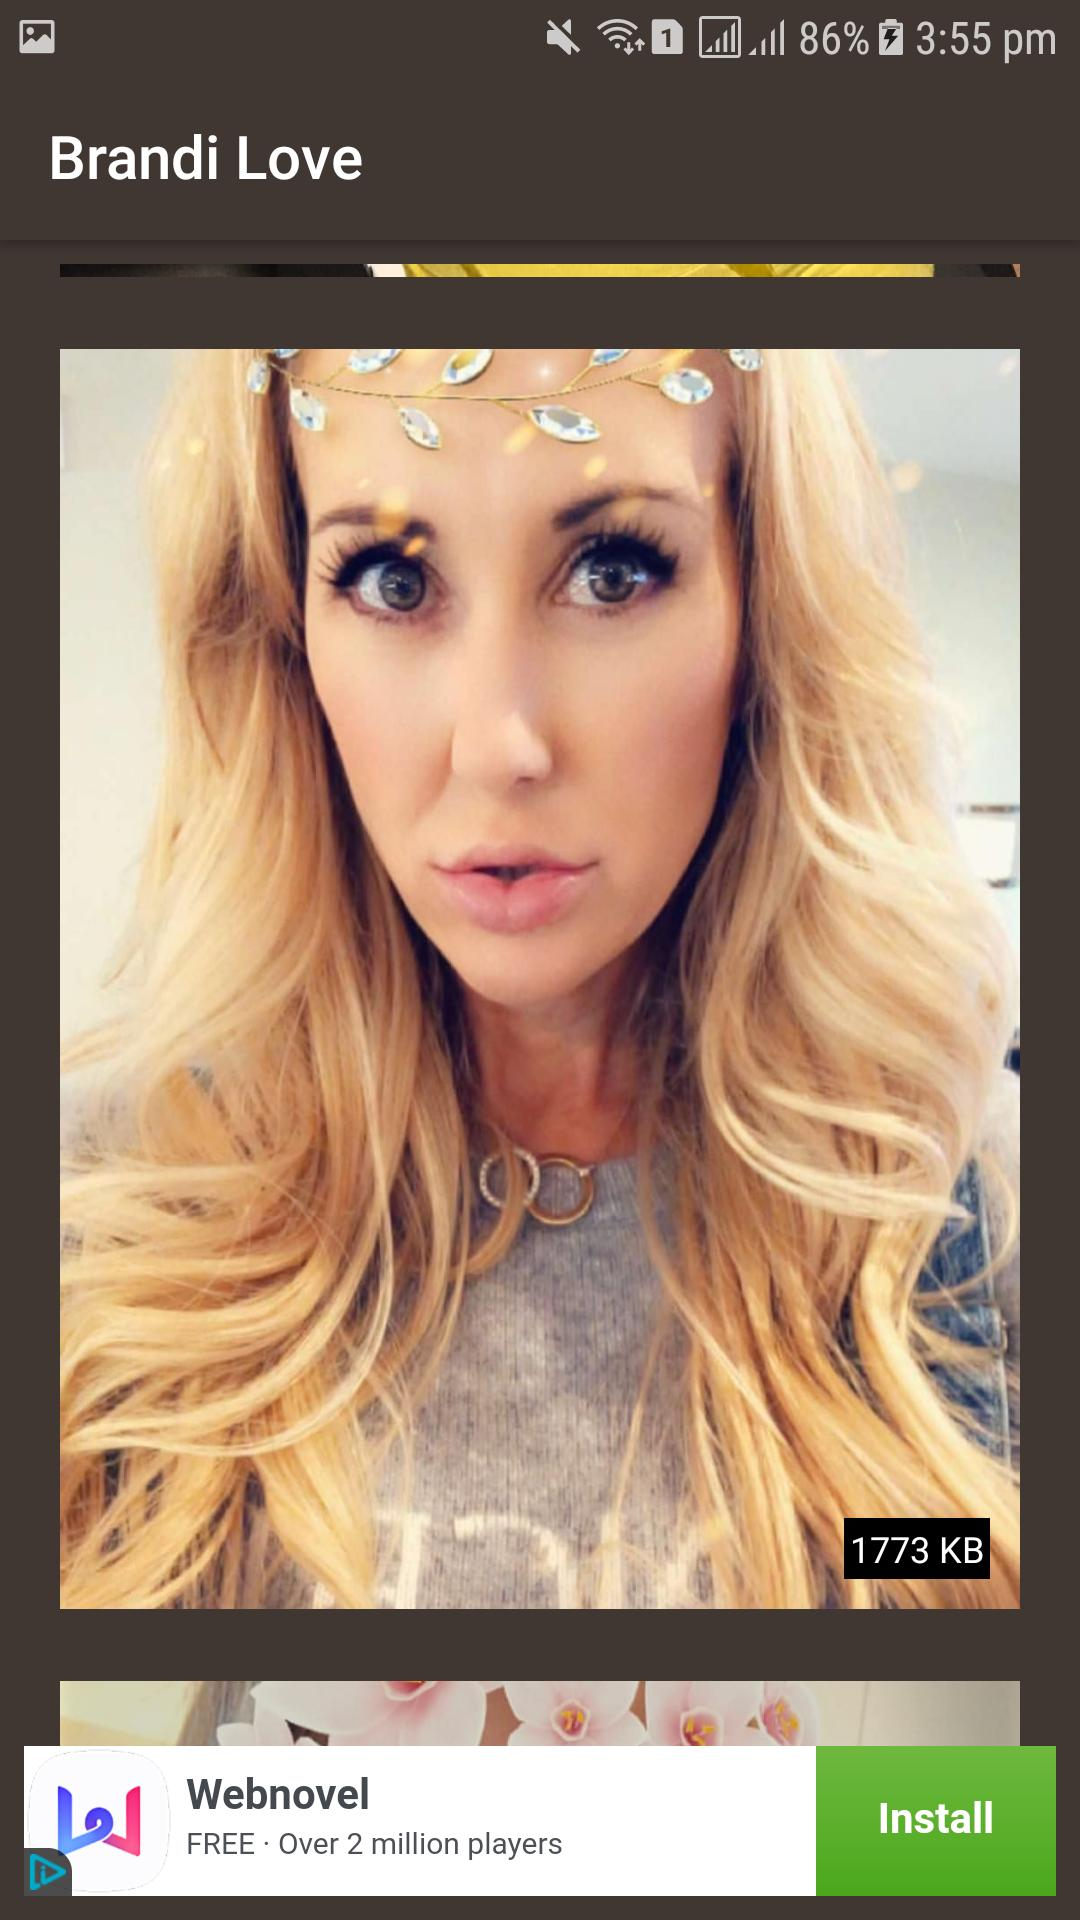 Brandi Love For Android - Apk Download-4295